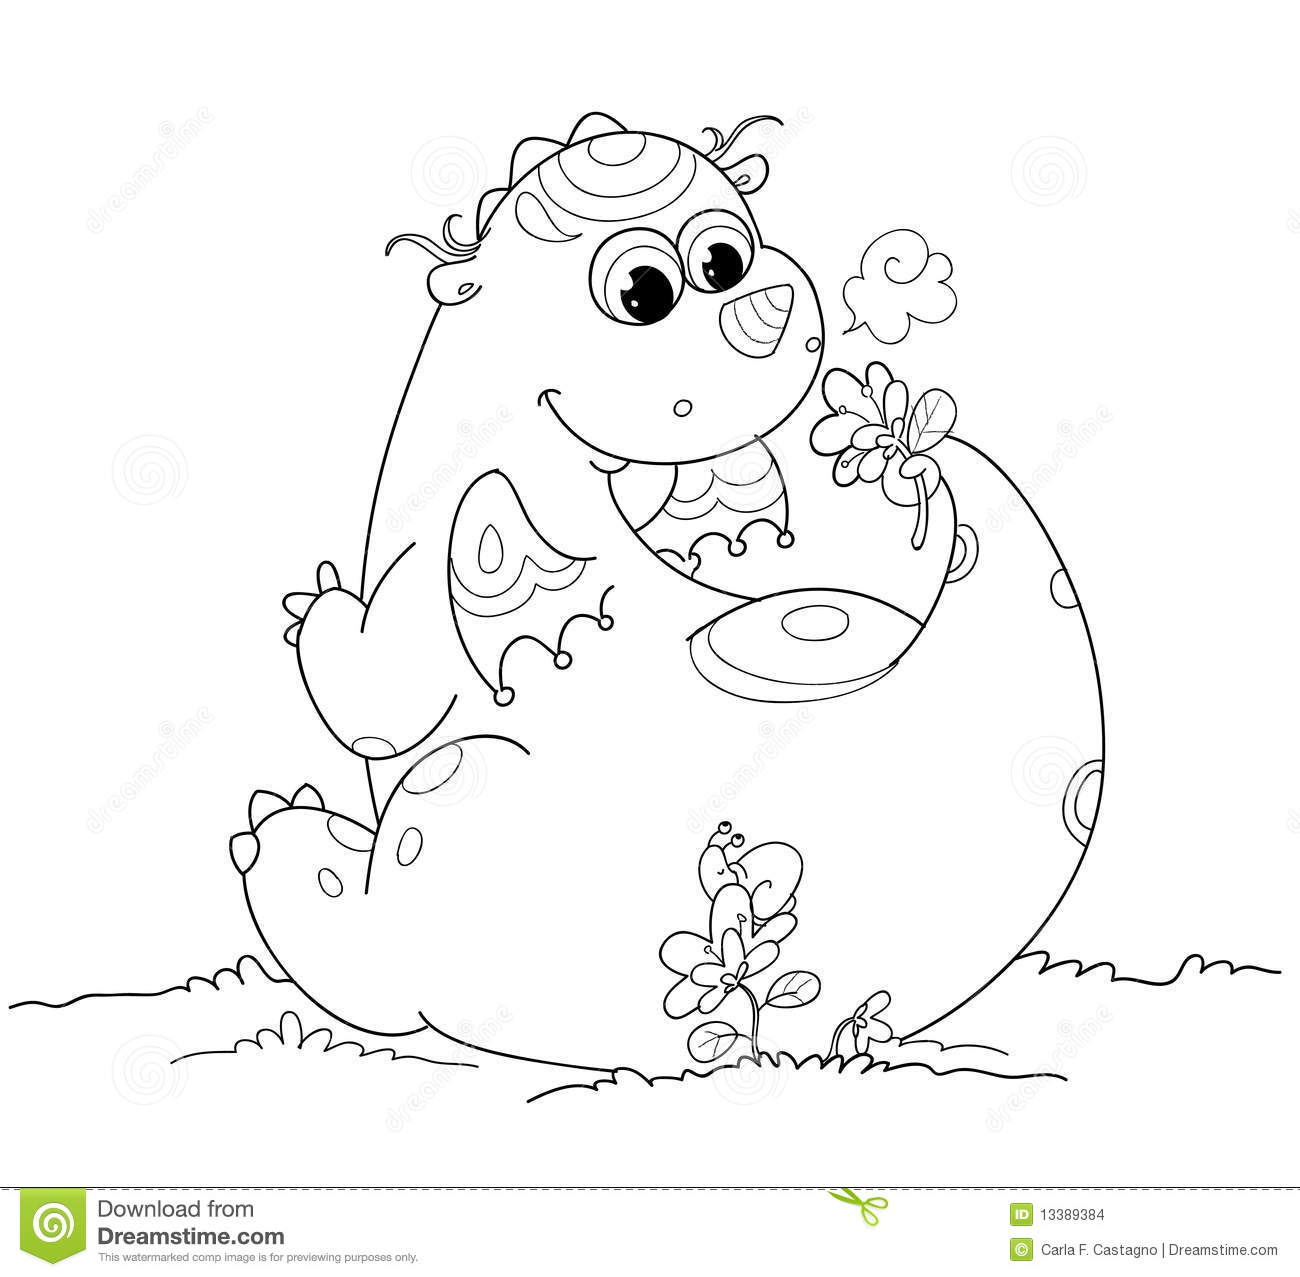 baby dragon cartoon coloring pages | Cute Coloring Baby Dragon Stock Images - Image: 13389384